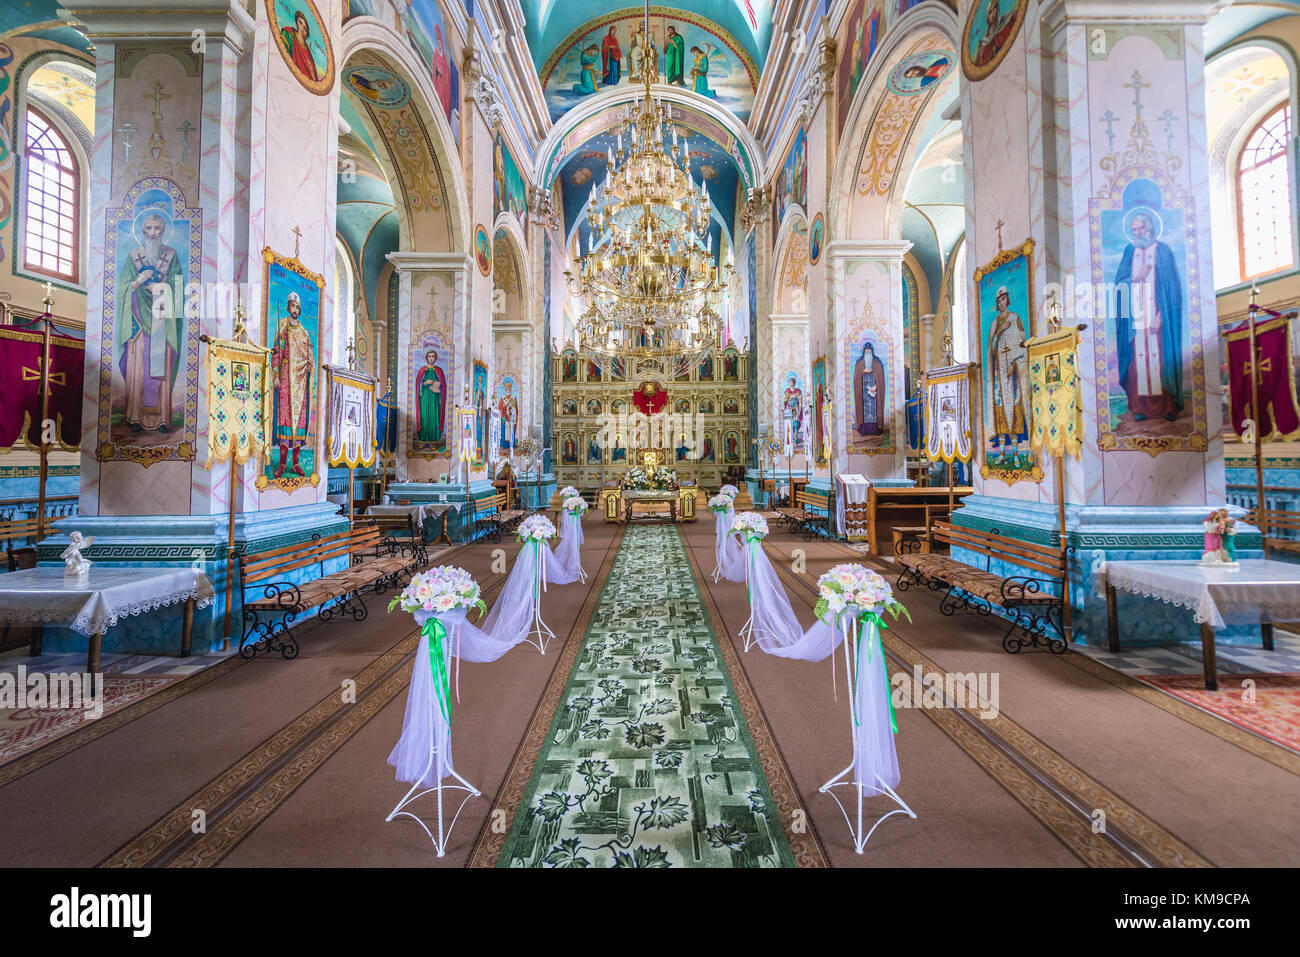 Interior of Saint Volodymyr Church of Carmelite monastery in